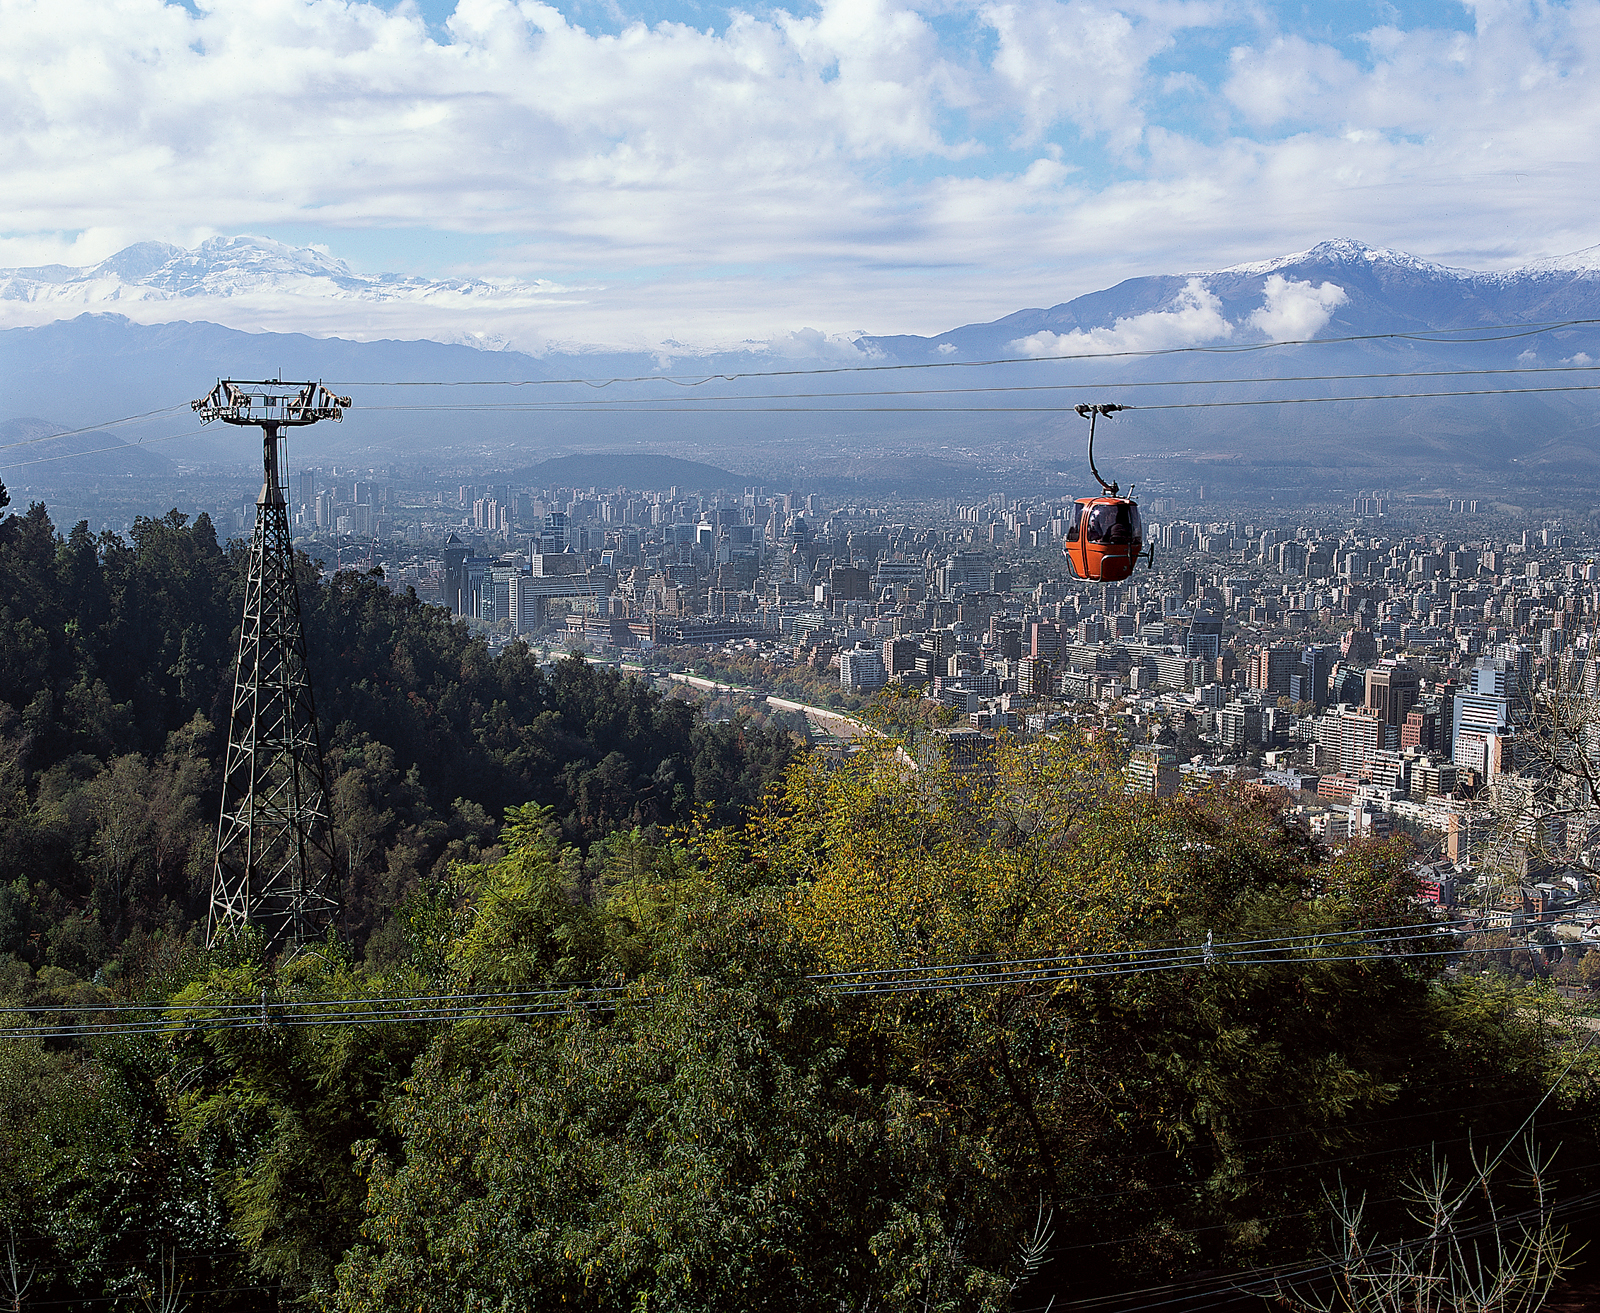 The city's second highest point, Cerro San Cristobal, with its Swiss-style gondolas,  rises some 1,000 feet above the rest of the city and is where Santiaguinos escape the urban bustle to picnic, swim, hike, and wander through gardens. Metropolitan Zoo  i